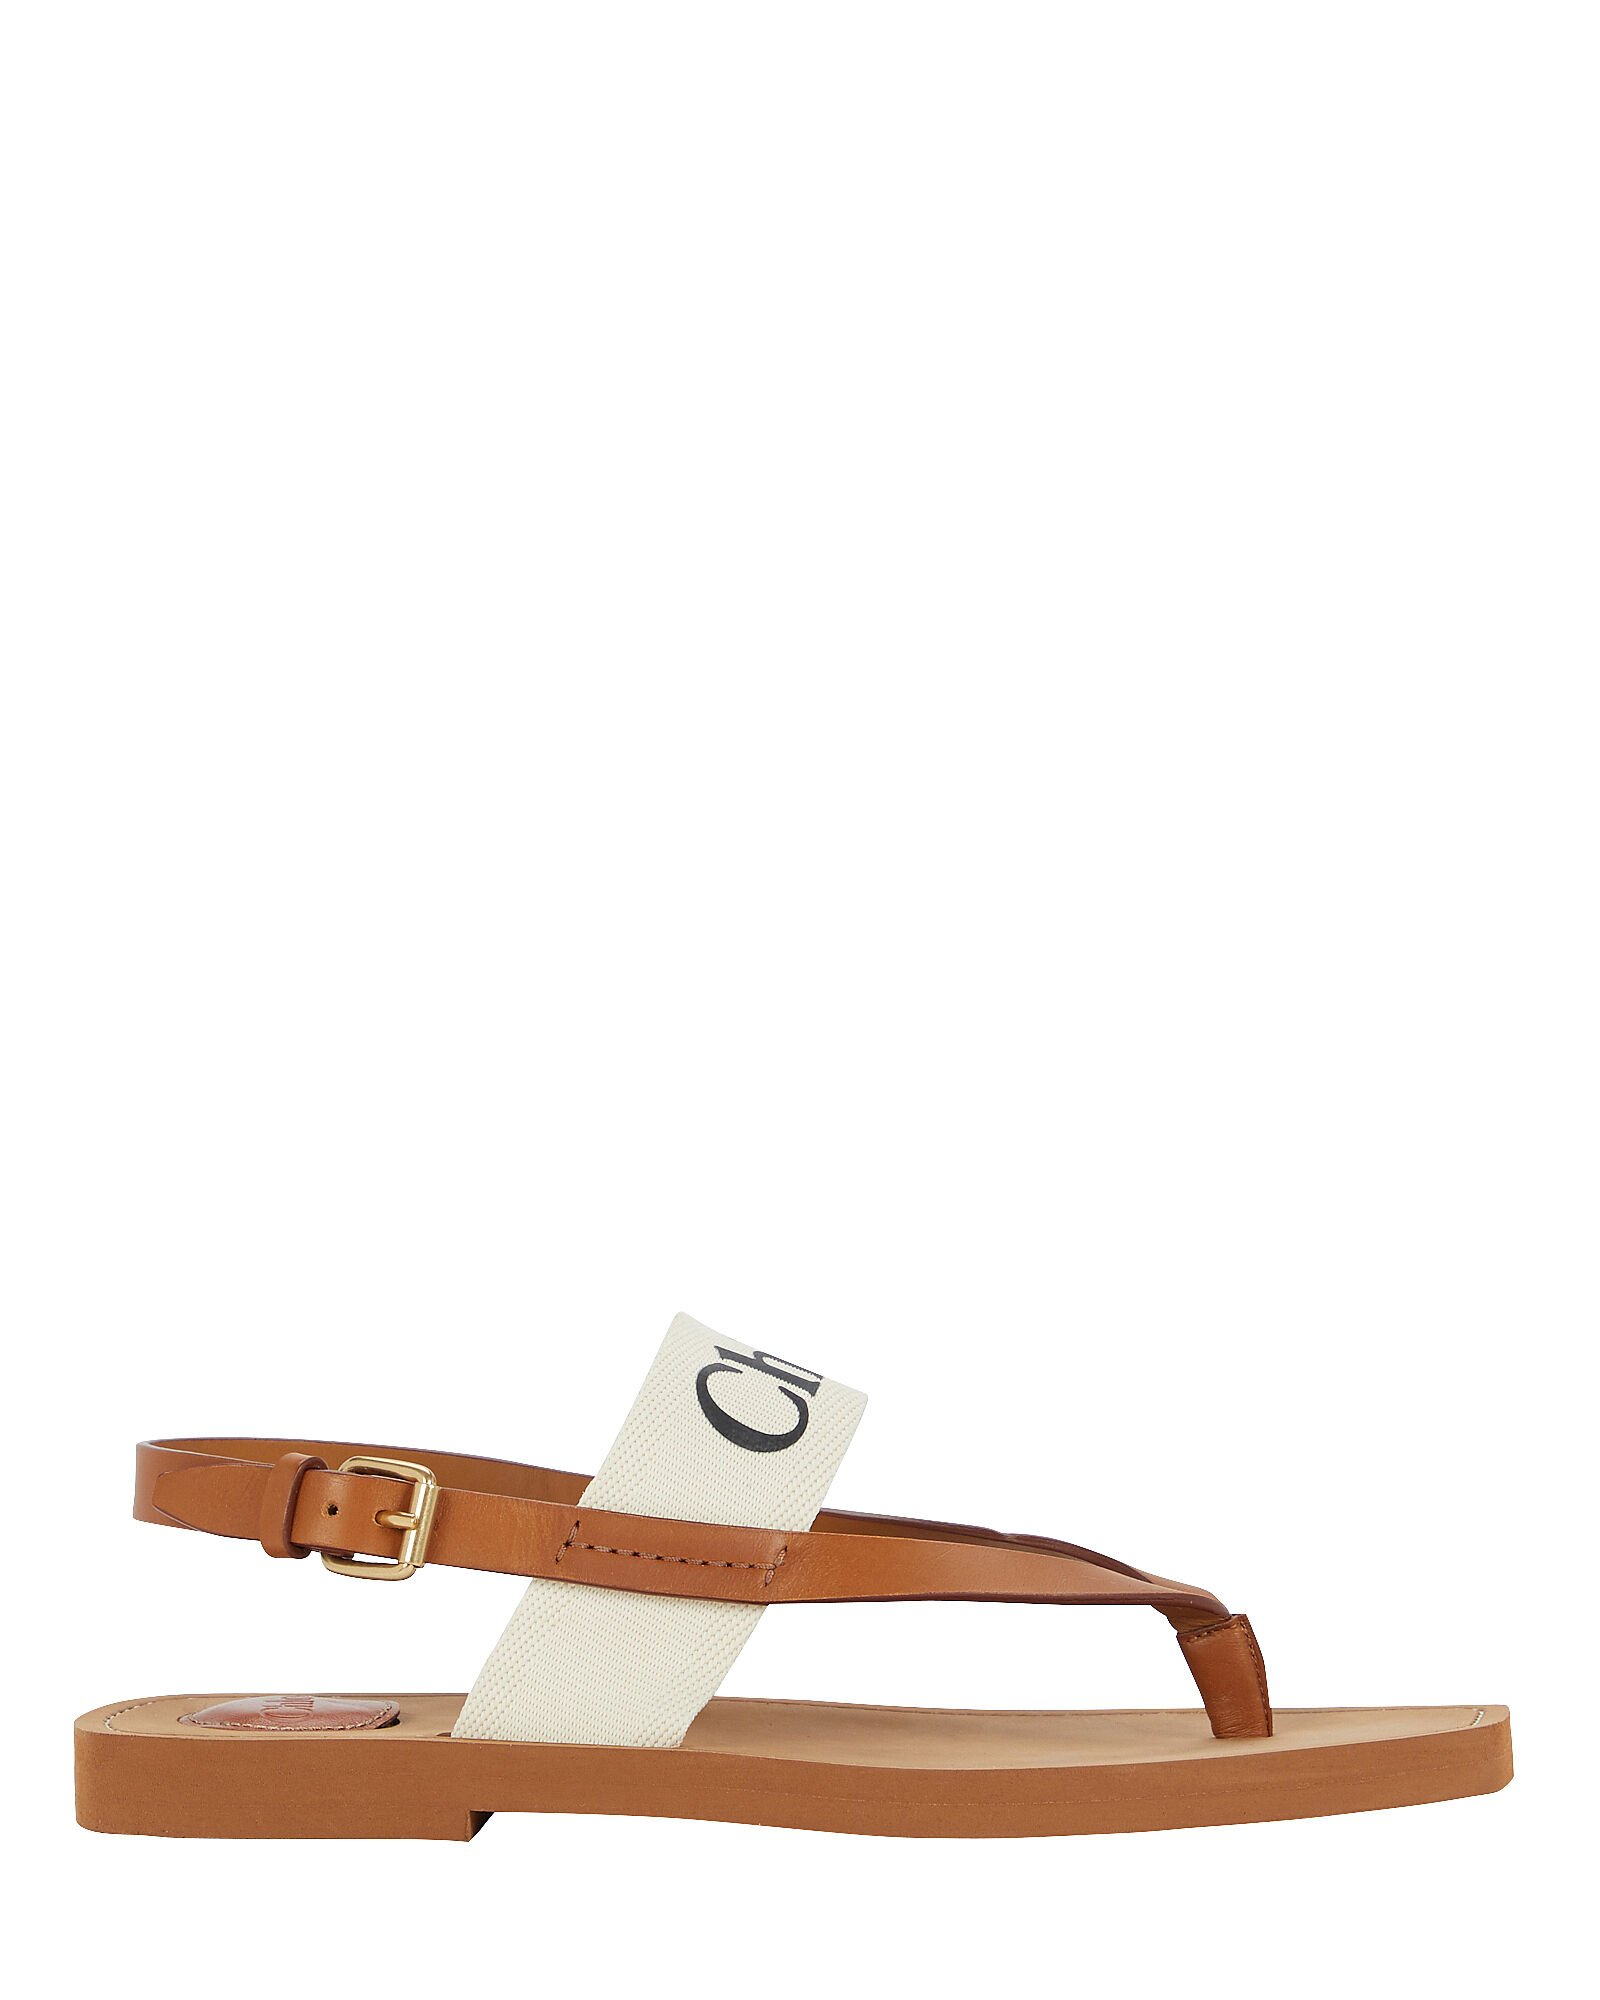 Chloé Woody Flat Leather Thong Sandals